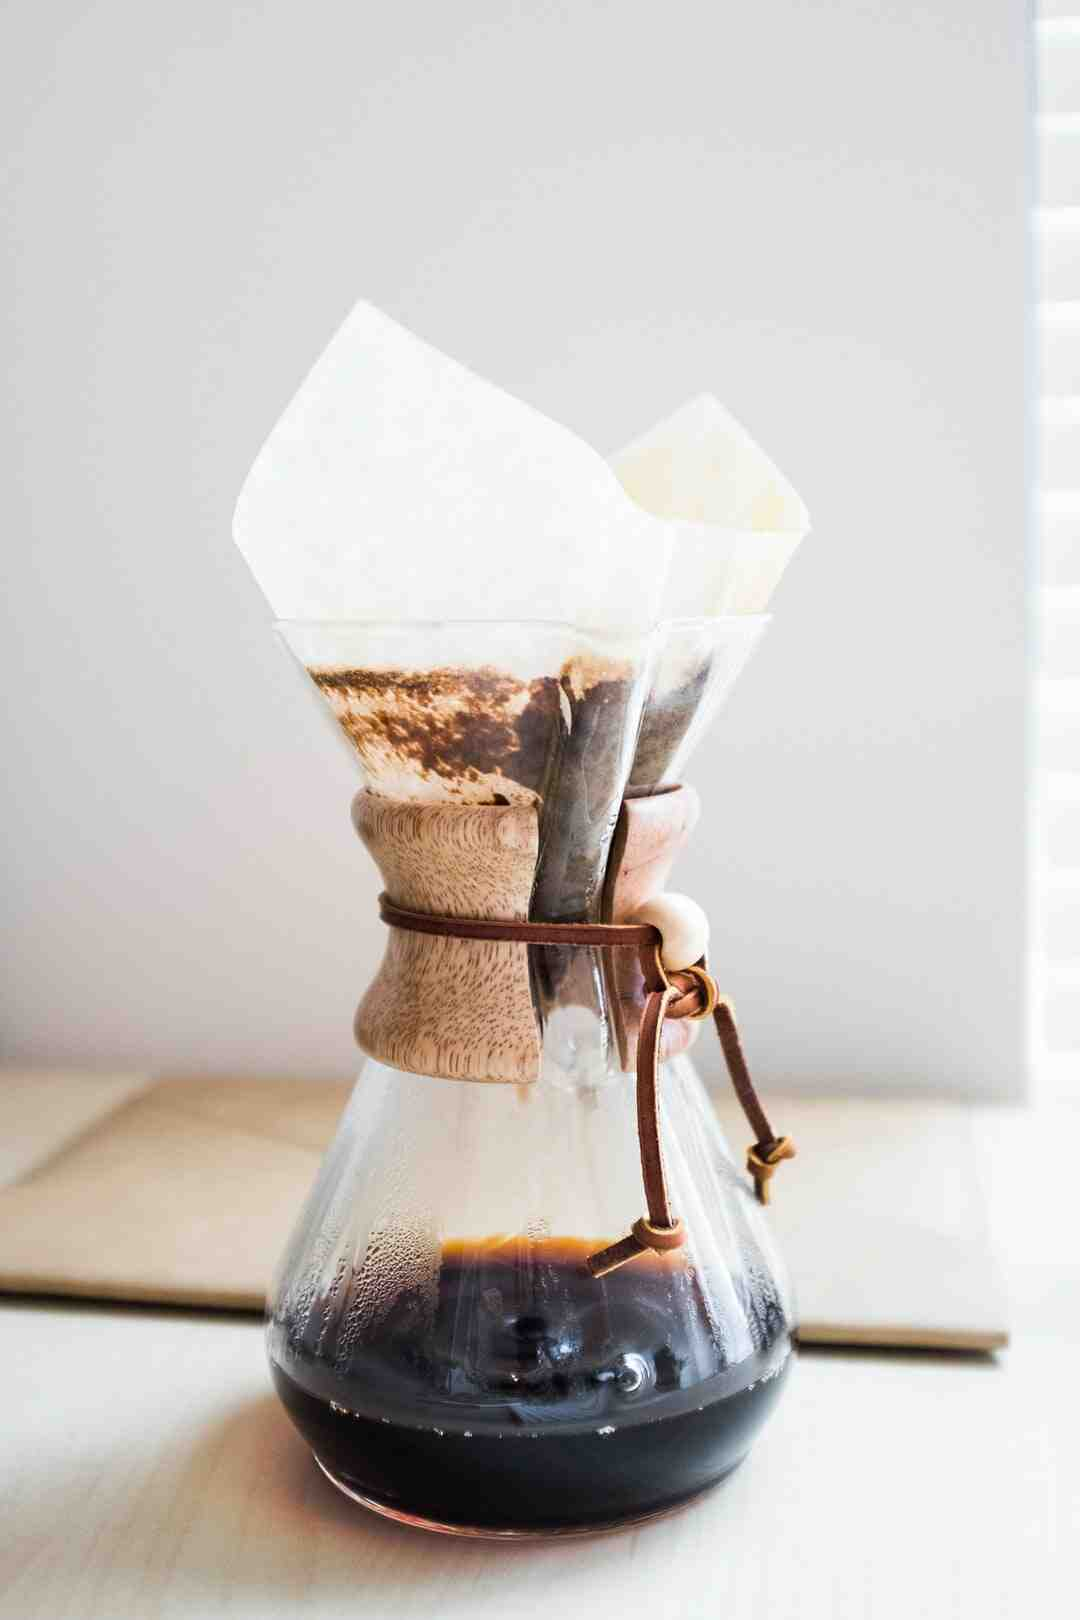 How do you keep coffee grounds from going Mouldy?